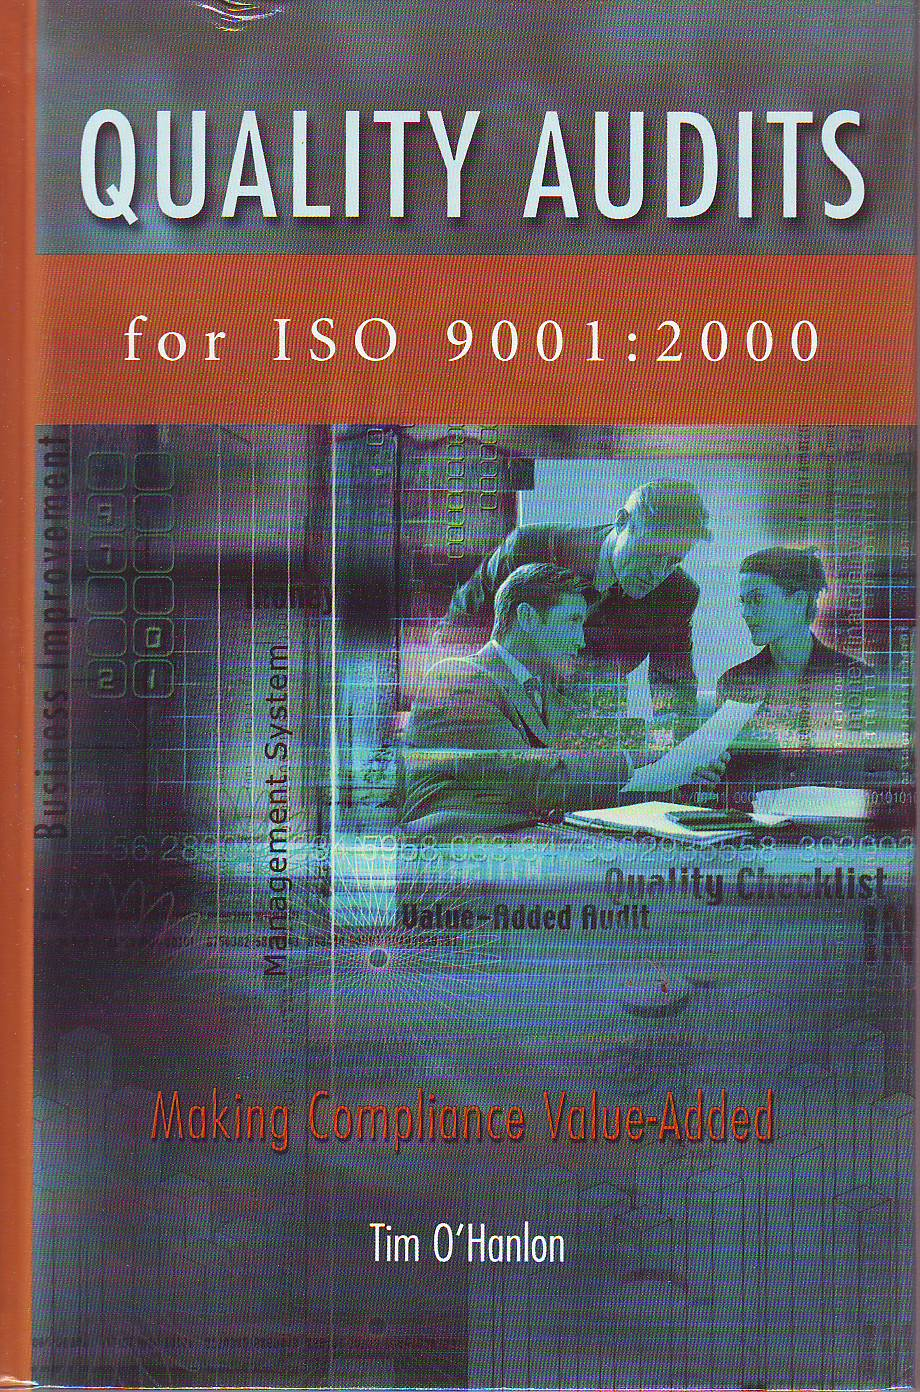 Quality Audits for ISO 9001:2000